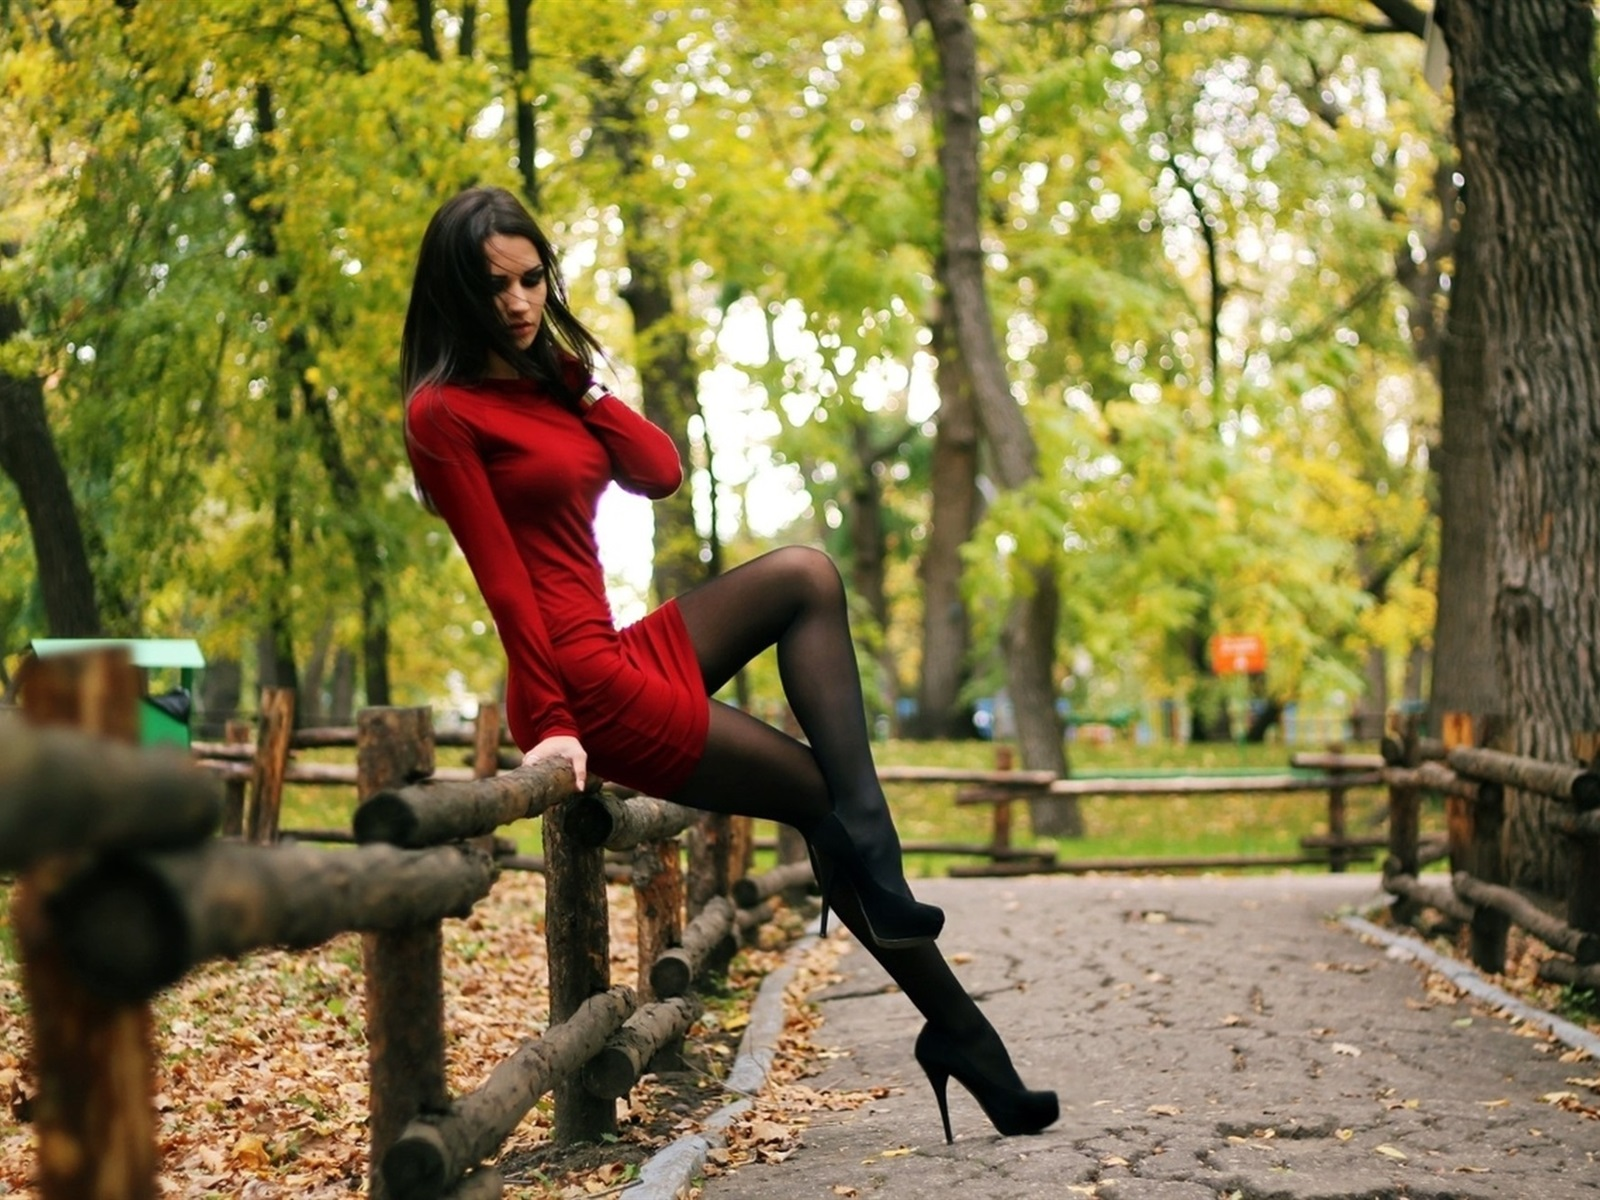 Wallpaper Sexy Red Dress Girl, Stockings, Park, Trees -7628